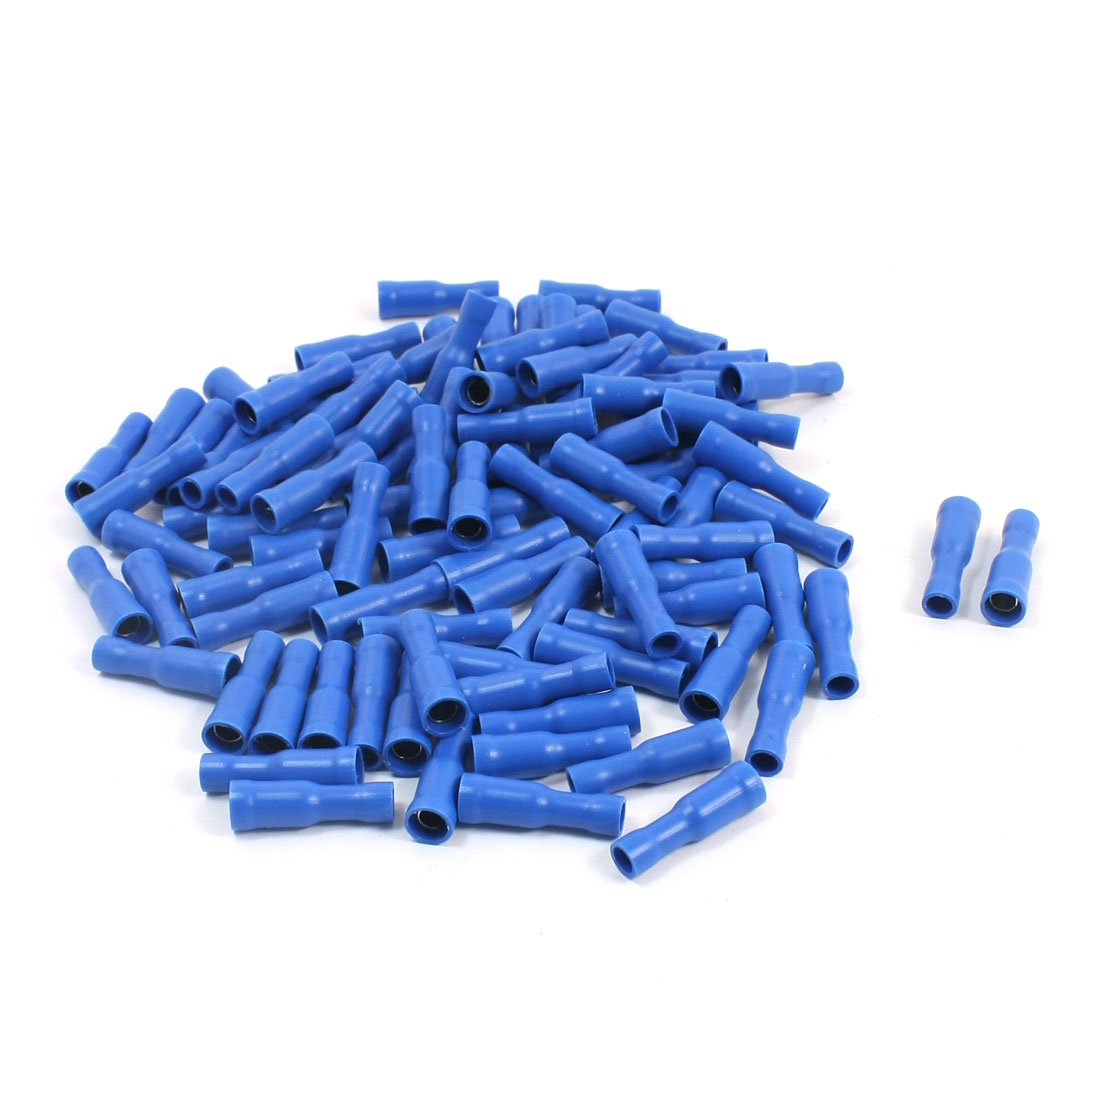 100Pcs 16-14 AWG FRD2-156 Blue PVC Sleeve Insulated Cable Terminals Crimp